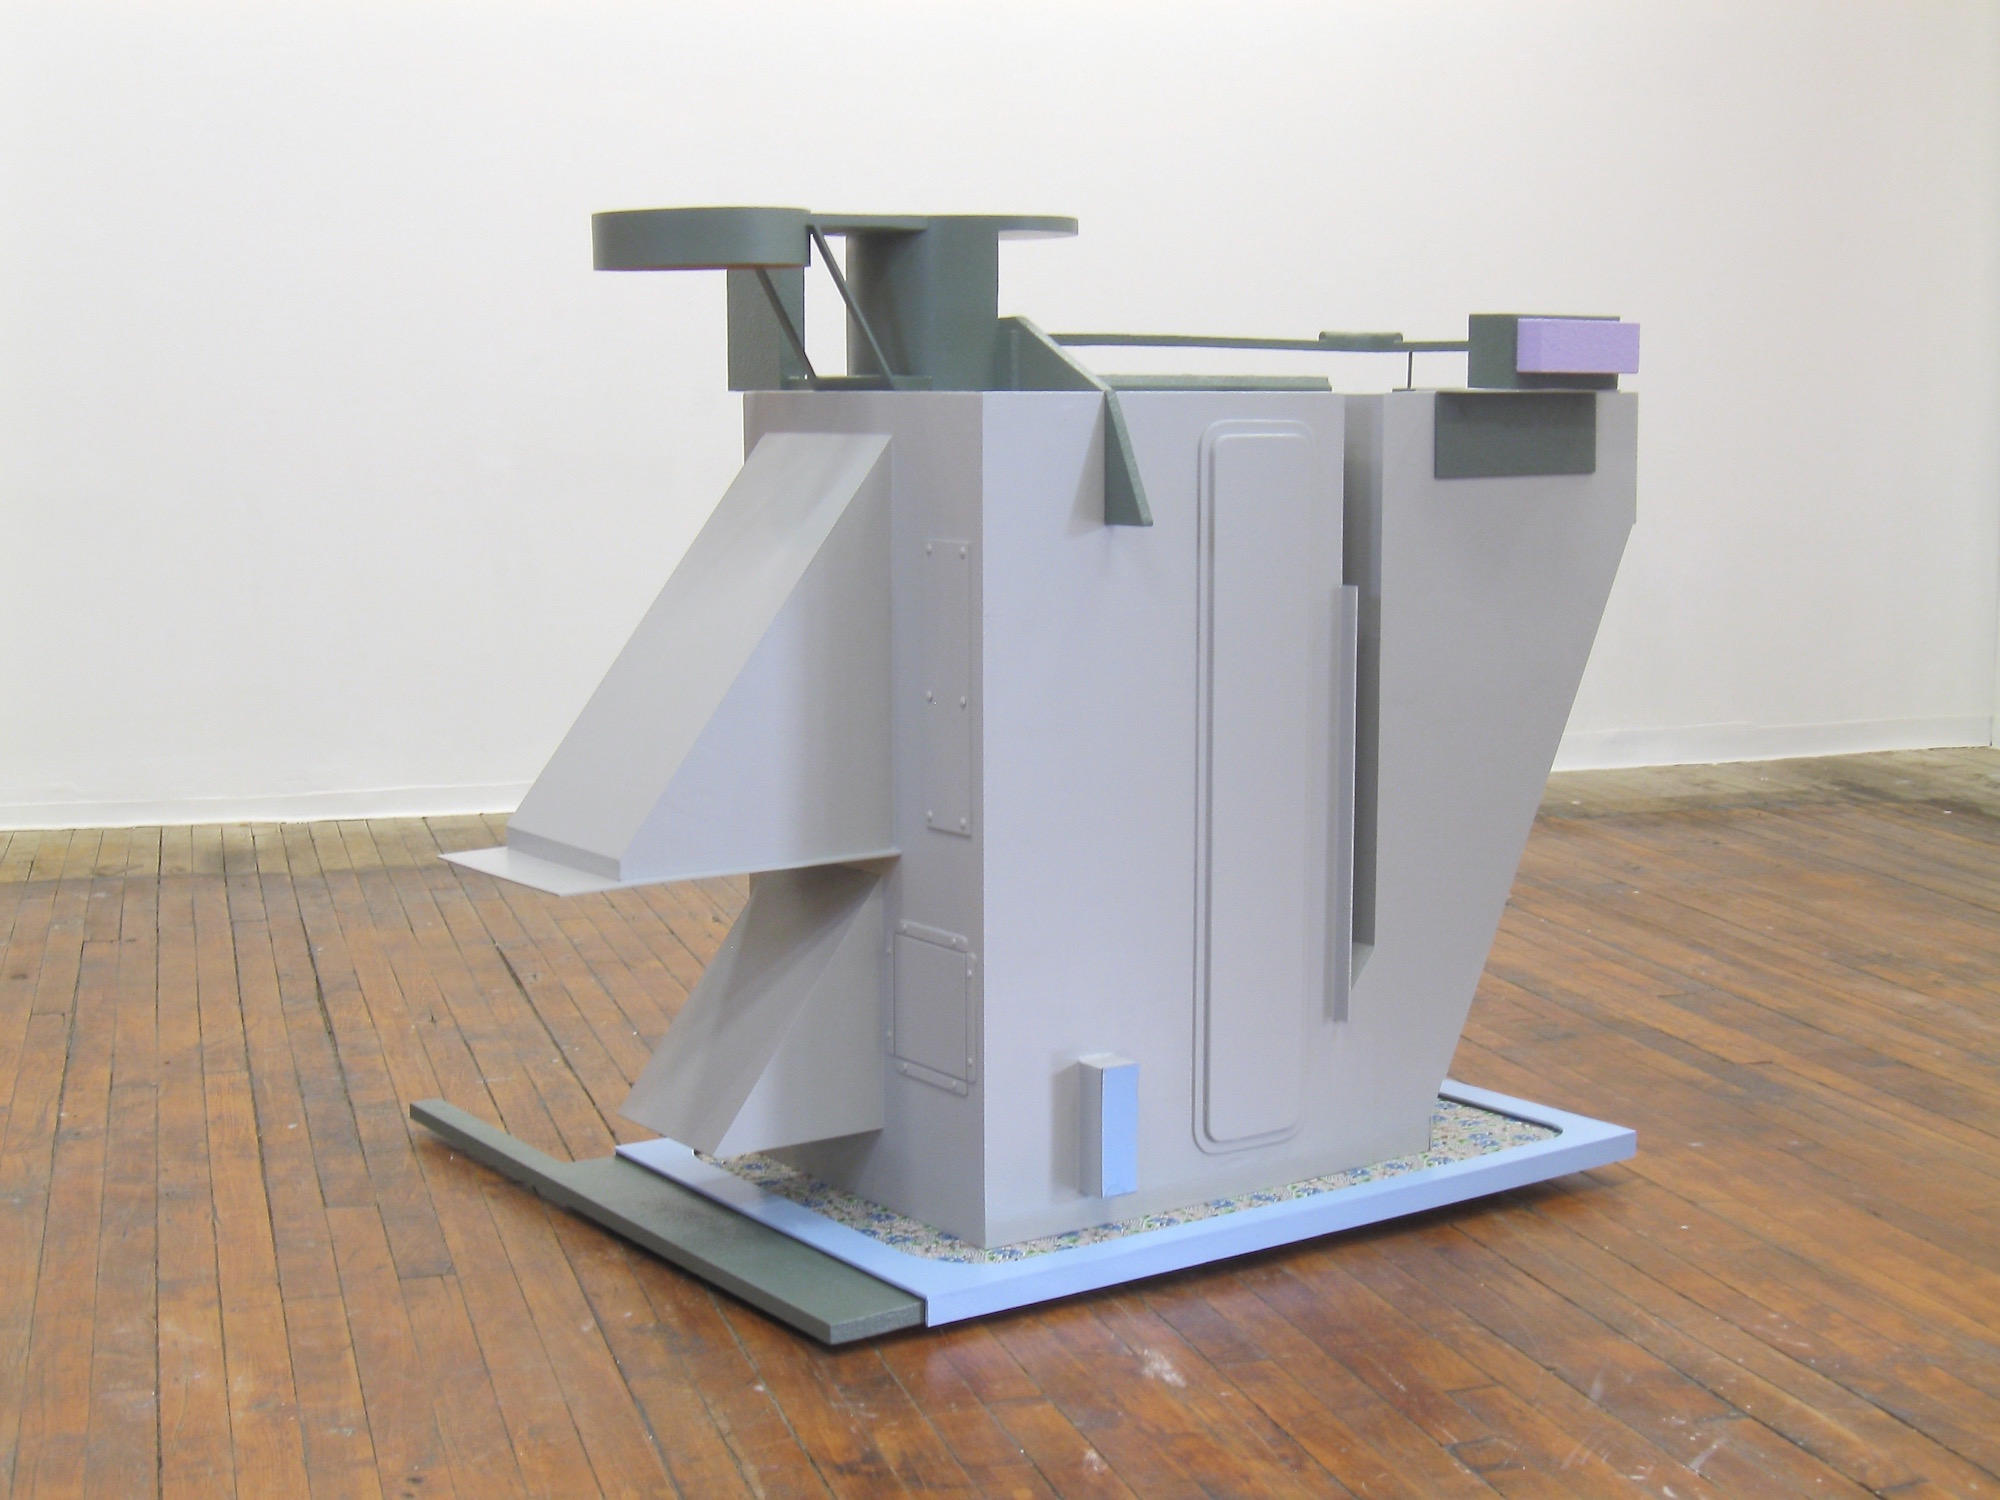 Stephen Reber, Air Handler (partially sighted), 2015, wood, mdf, molded plastic, aqua resin, fabric, oil paint, 42 x 56 x 40 inches